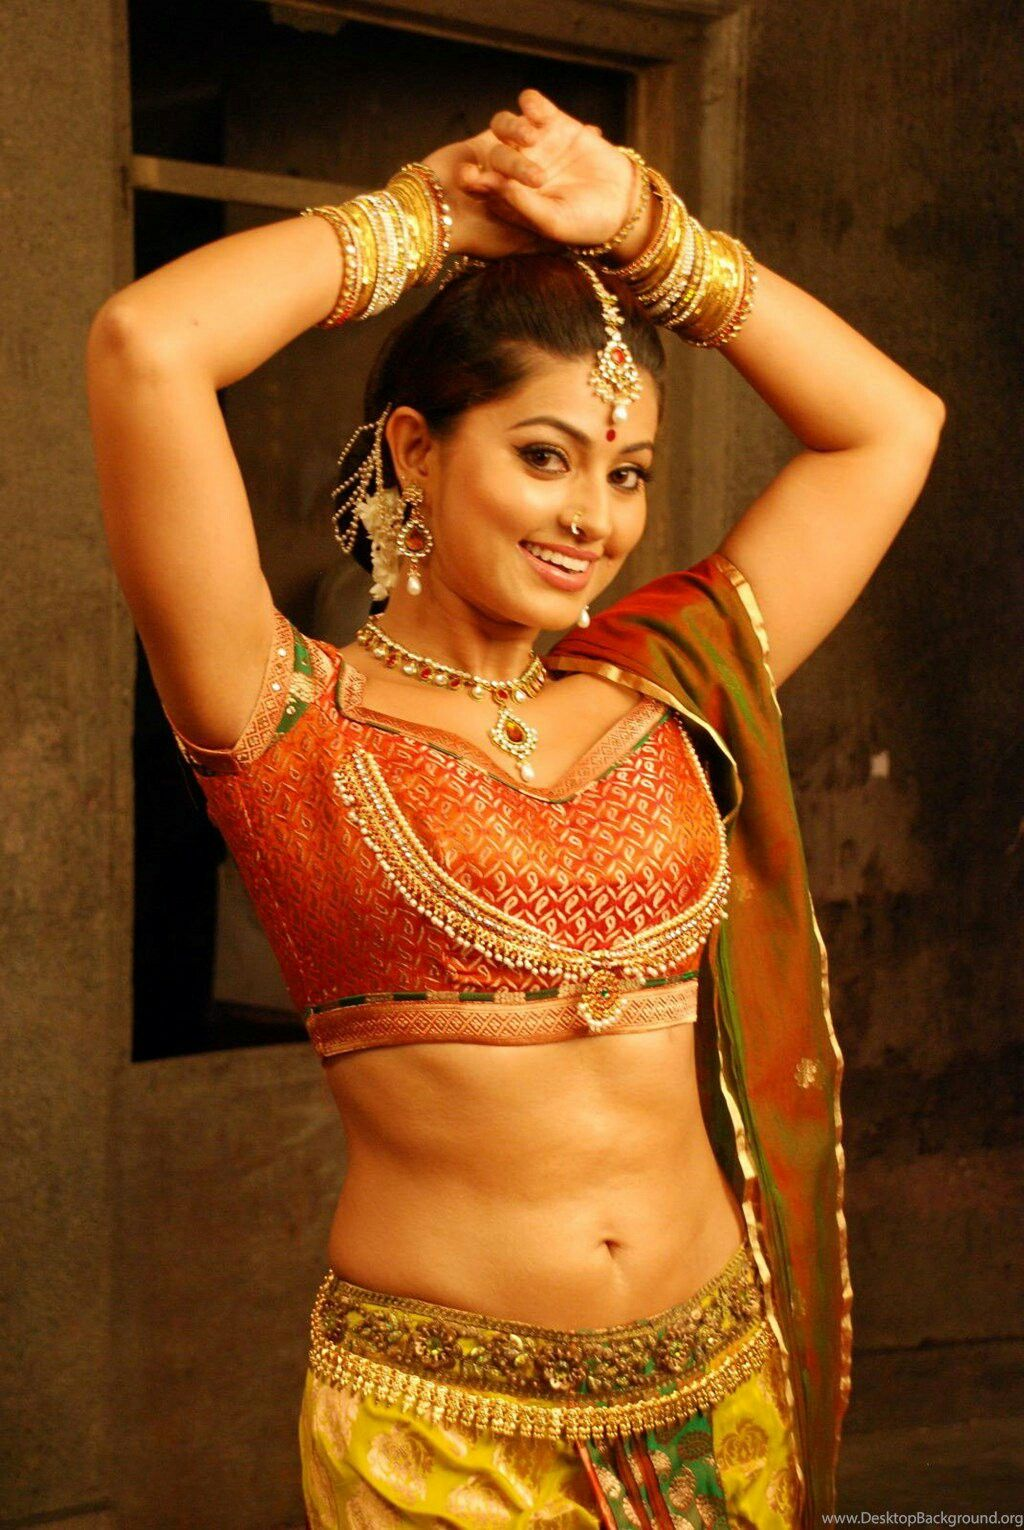 Pin By Green On Sneha Actress Sexy In 2018 Pinterest Actresses Indian Actresses And Hot